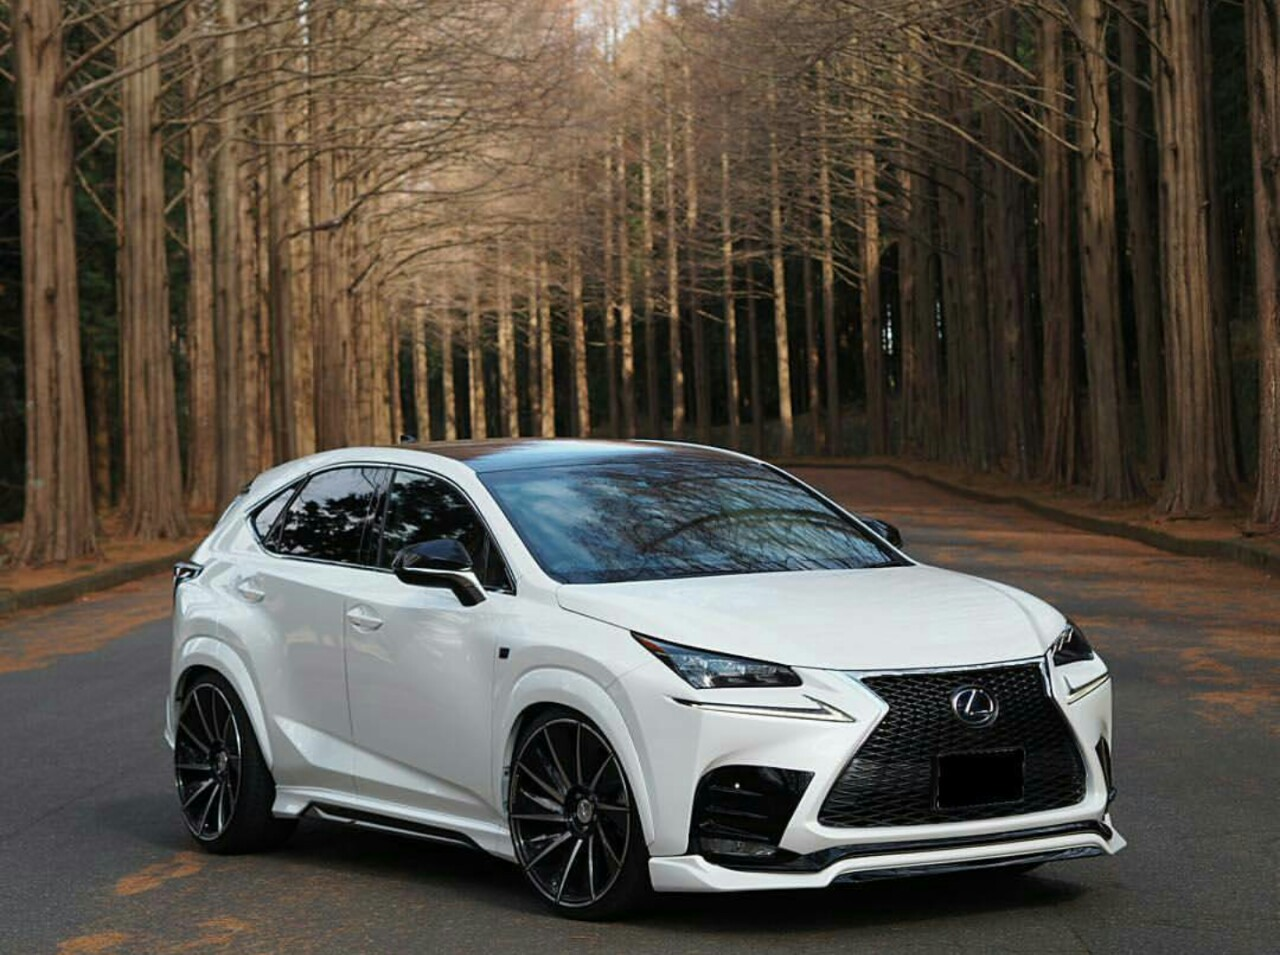 2016 lexus nx 300h new car release date and review 2018 amanda felicia. Black Bedroom Furniture Sets. Home Design Ideas